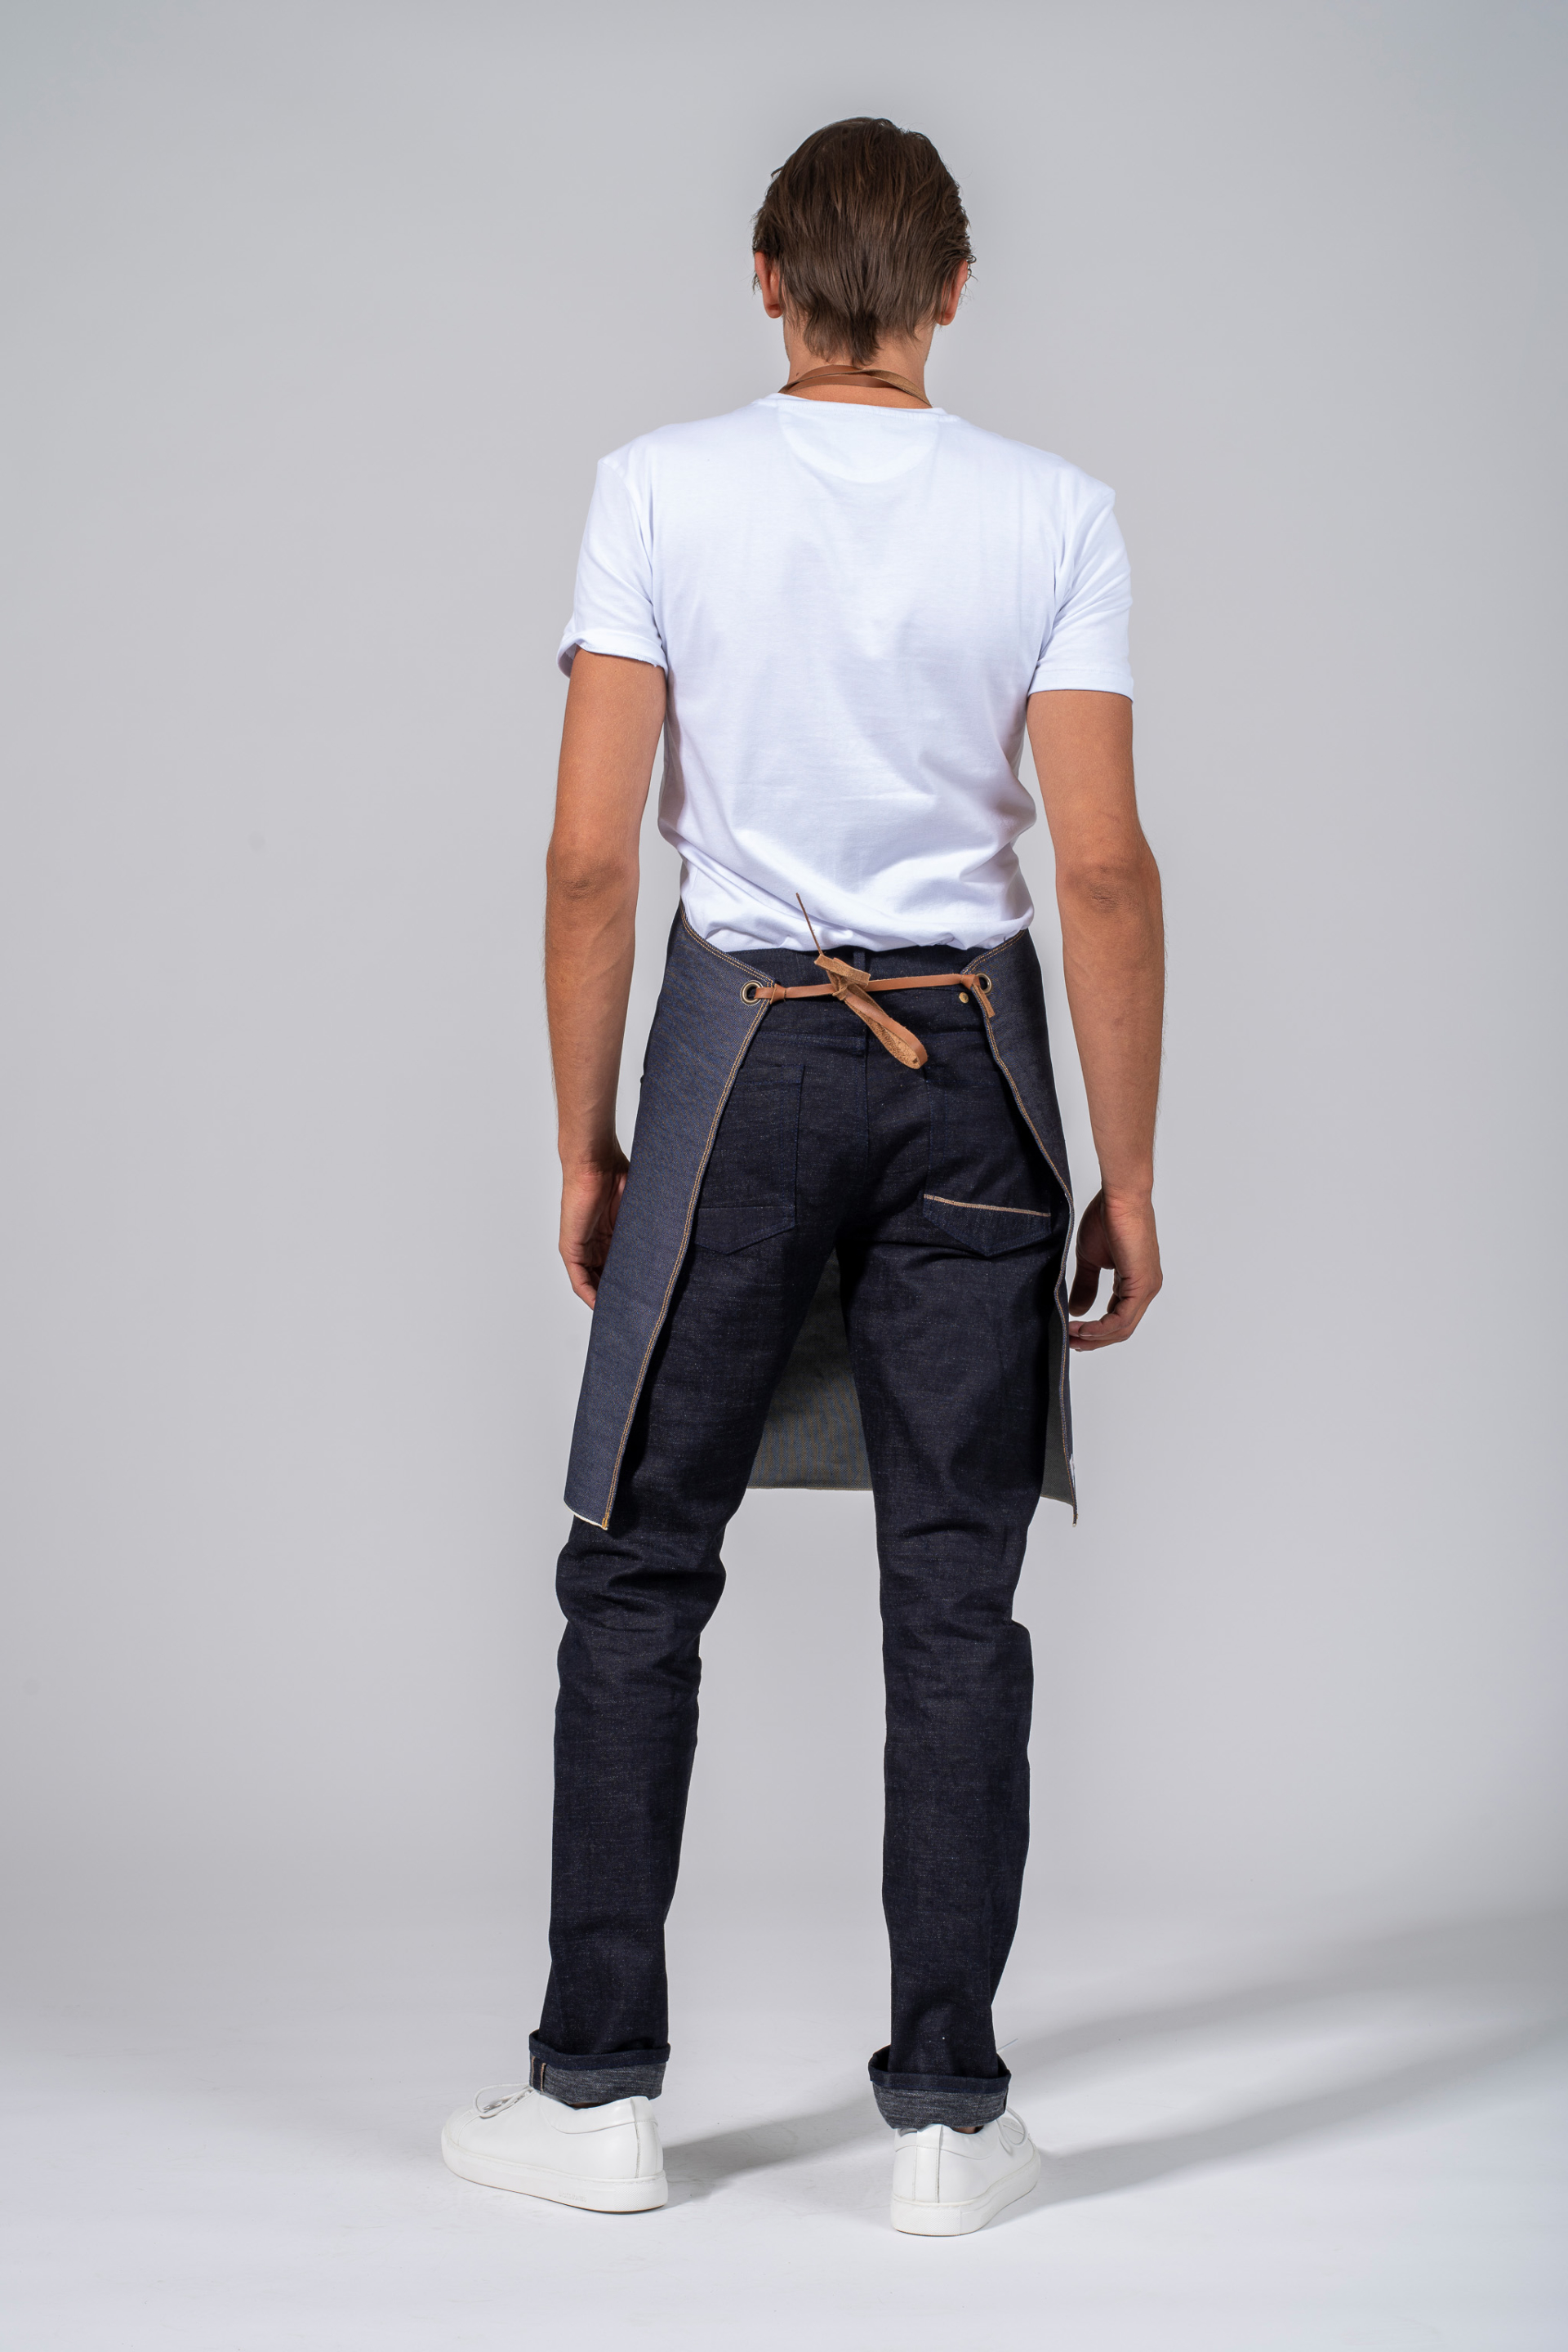 denim jeans scusarin candiani denim collection candiani denim store